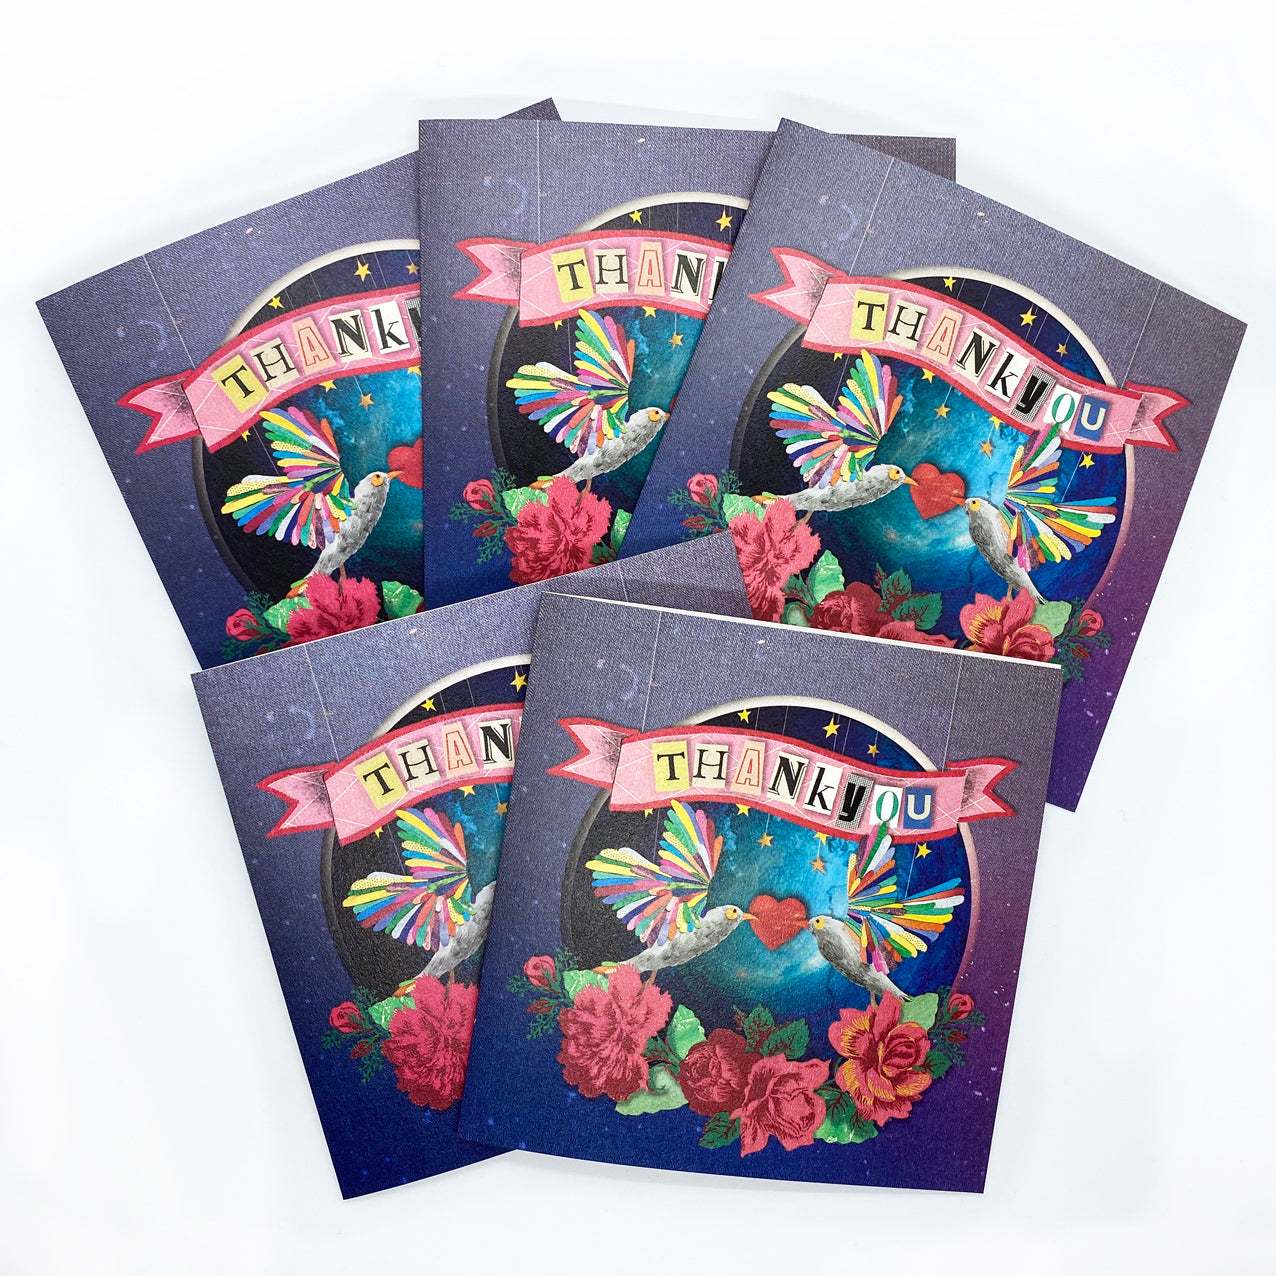 The 'Thankyou' Greeting Card Bundle - x5 Cards